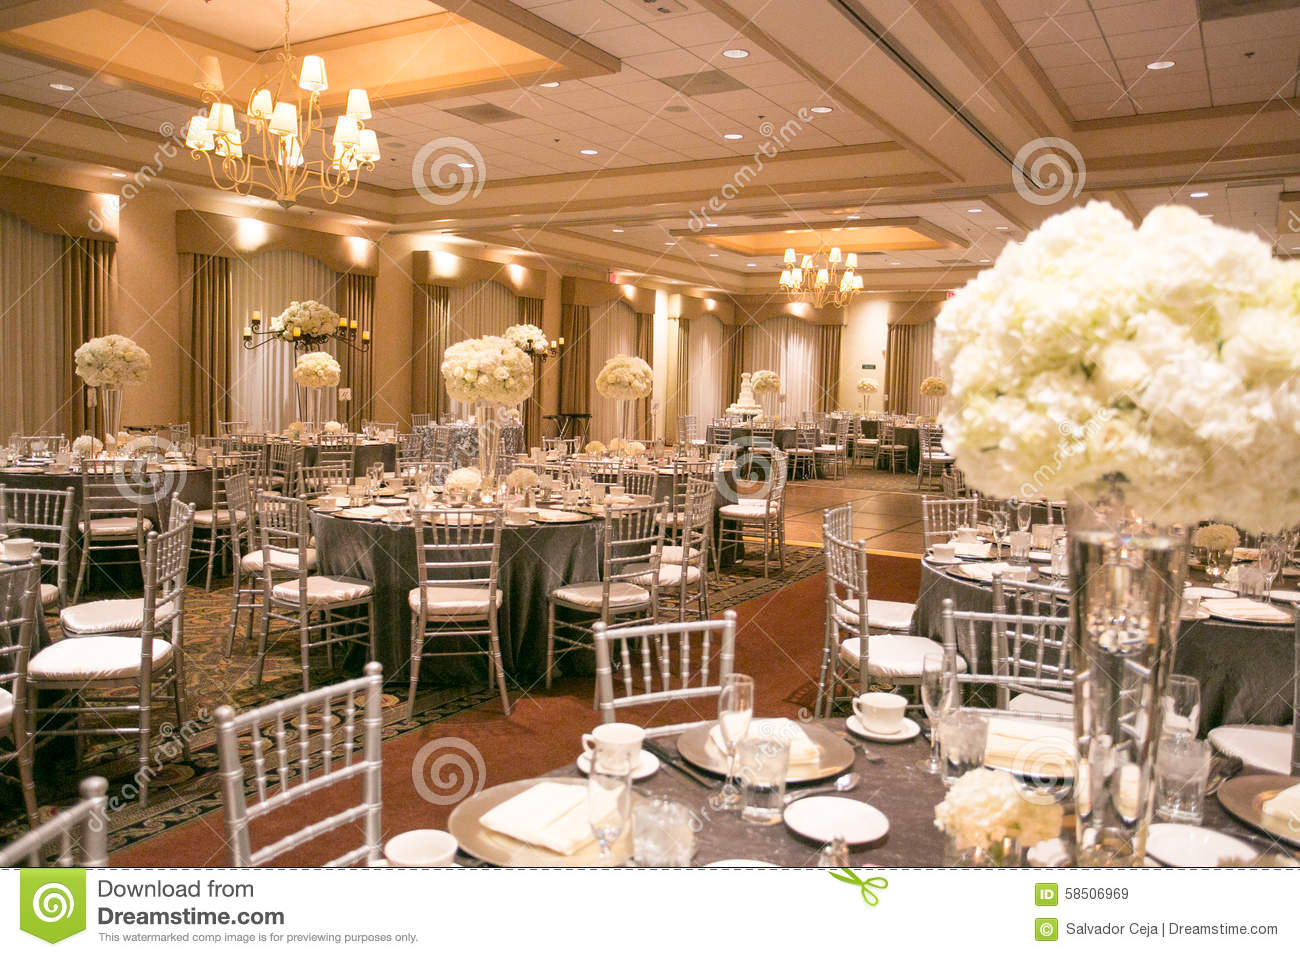 Wedding table decor stock image. Image of glamour, convention - 58506969